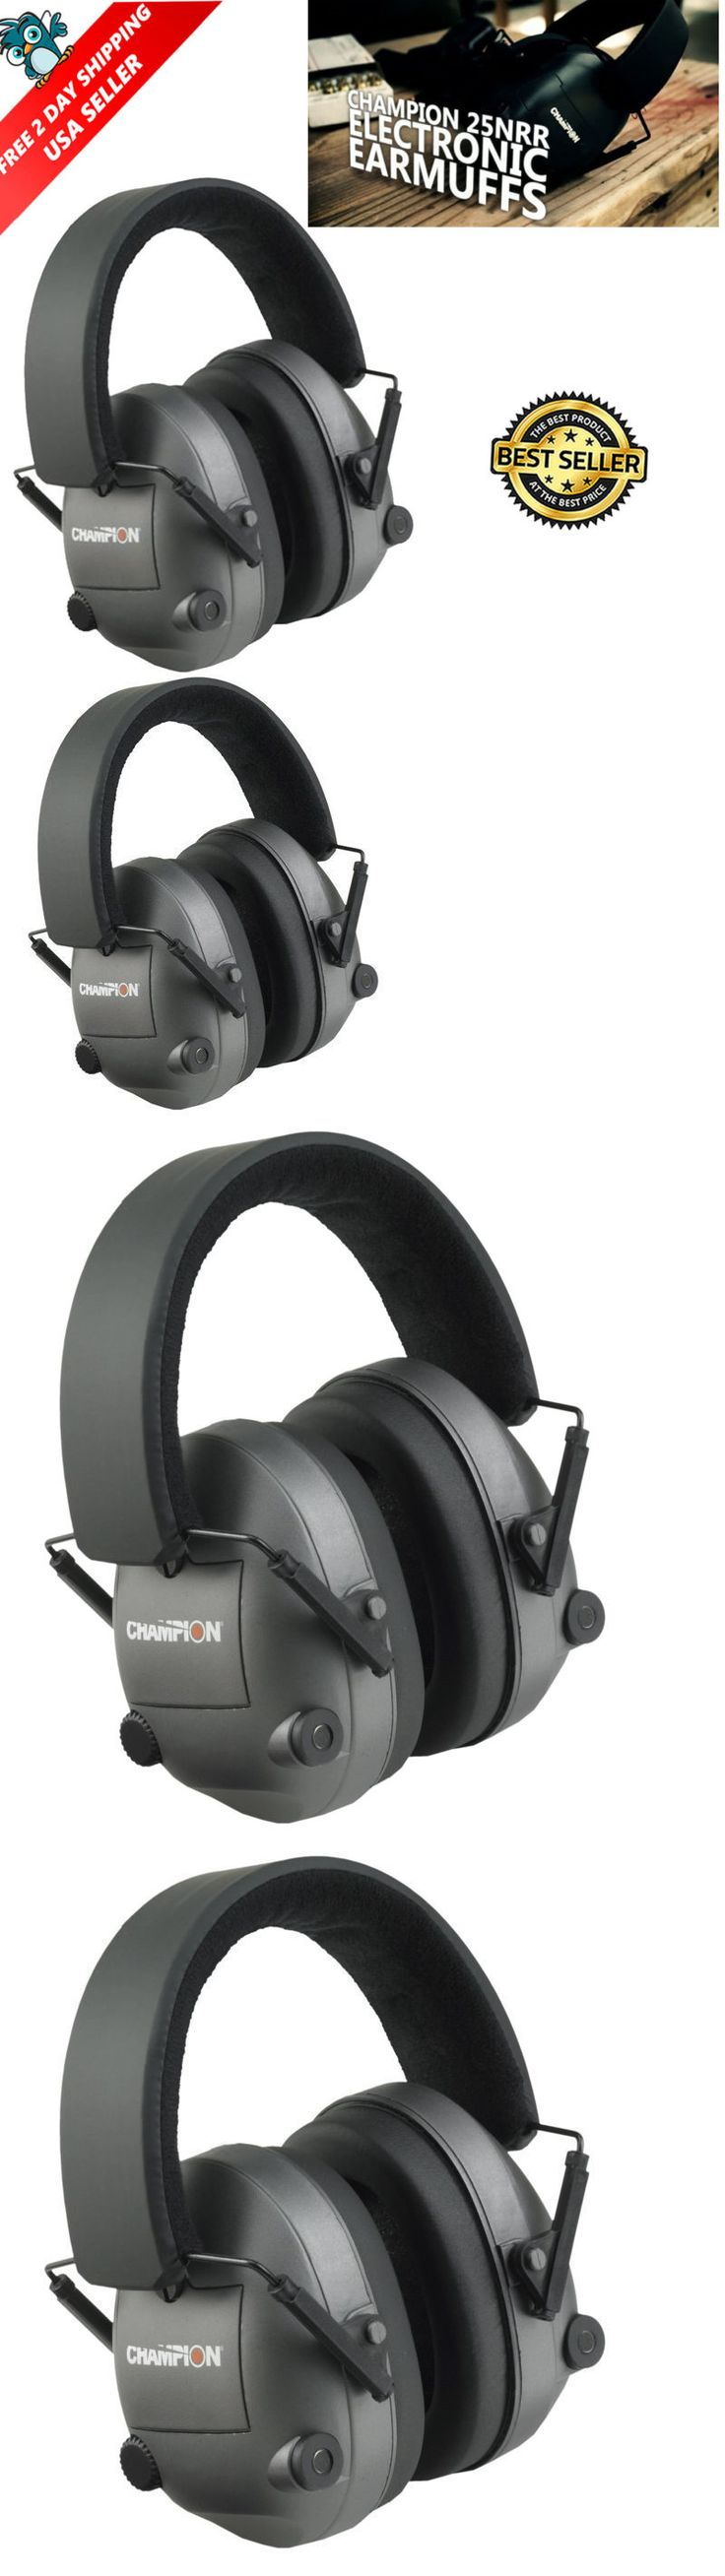 Hearing Protection 73942: Electronic Shooting Ear Protection Muffs Sport Hunt Noise Cancelling Head Gun Us -> BUY IT NOW ONLY: $34.18 on eBay!